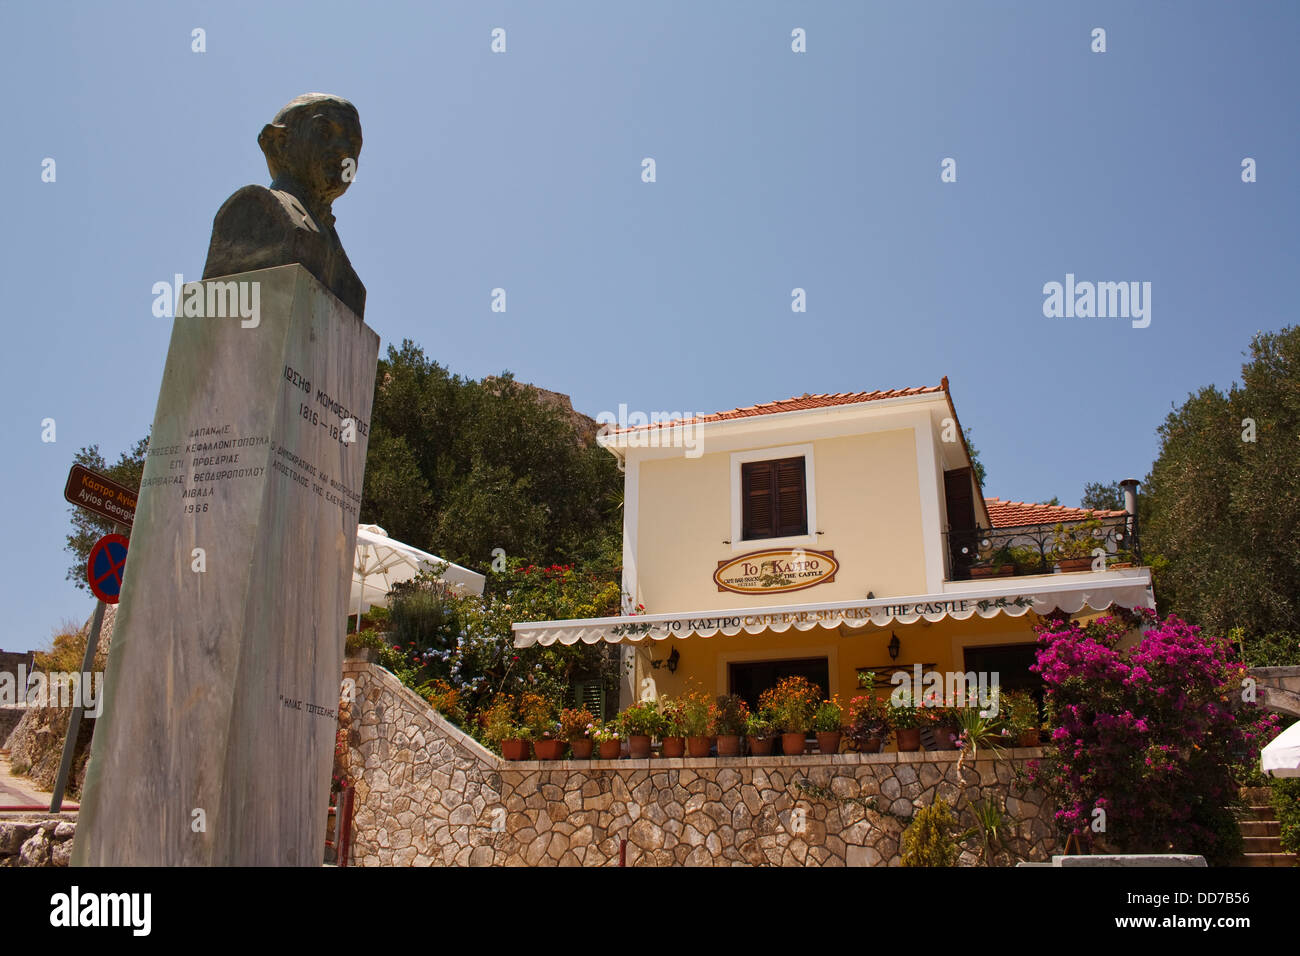 The Kastro Cafe below the castle of Saint George, on the Greek island of Kefalonia. - Stock Image